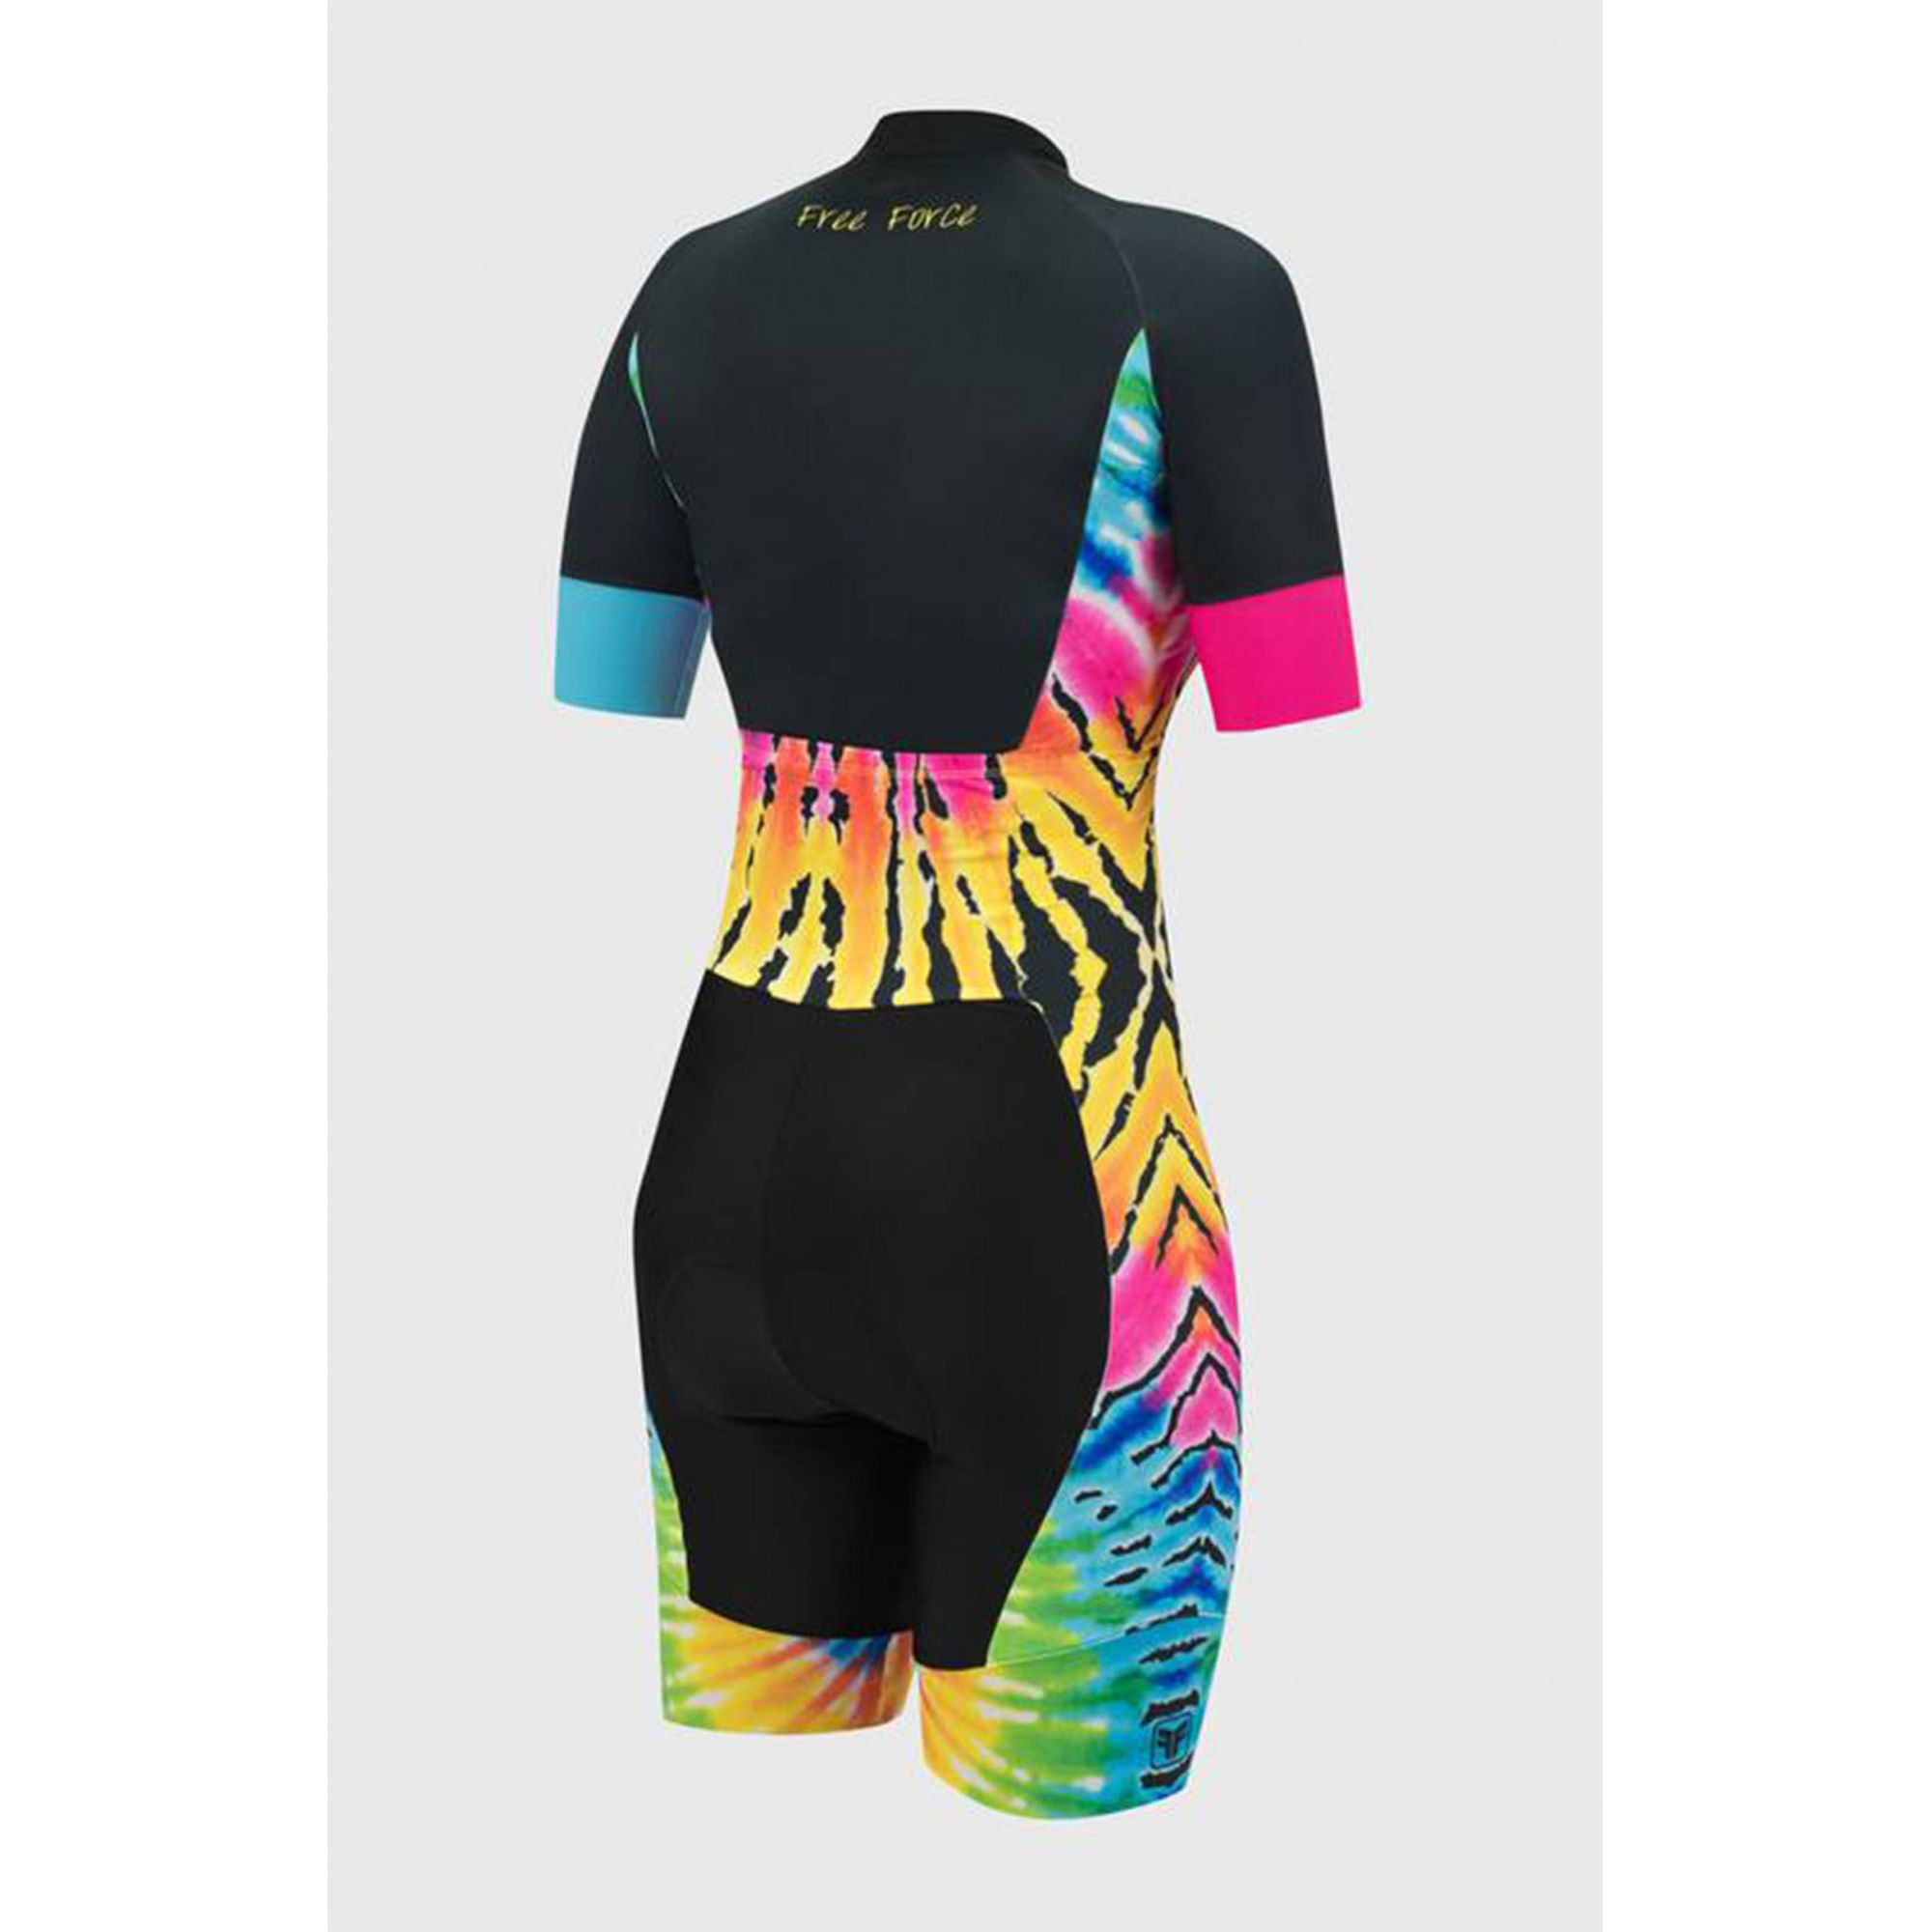 Macaquinho Ciclismo Sport Tie Dye - Free Force